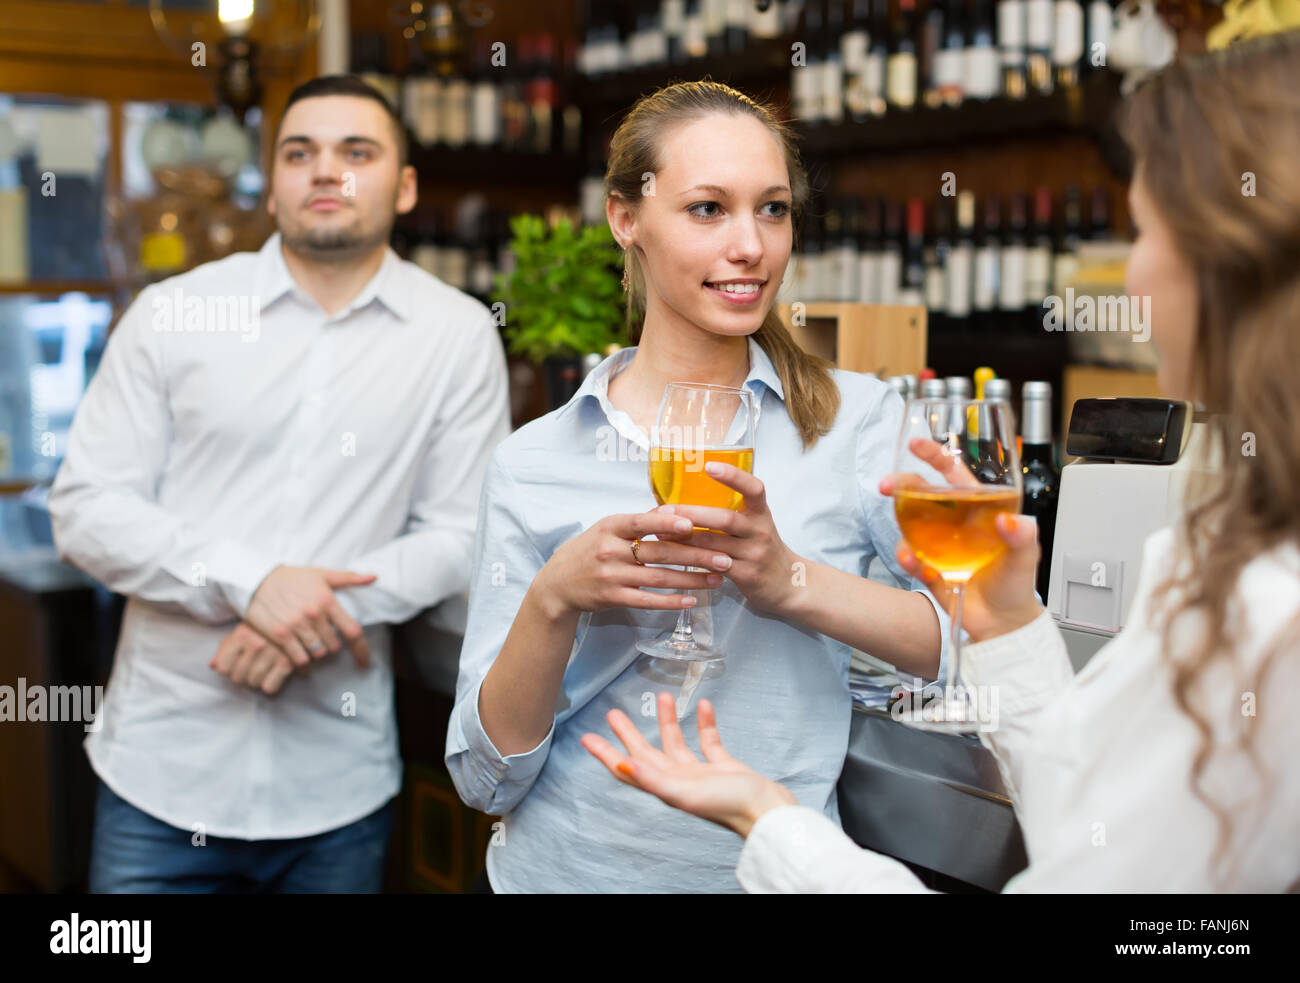 Casual acquaintance of young happy adults at bar - Stock Image